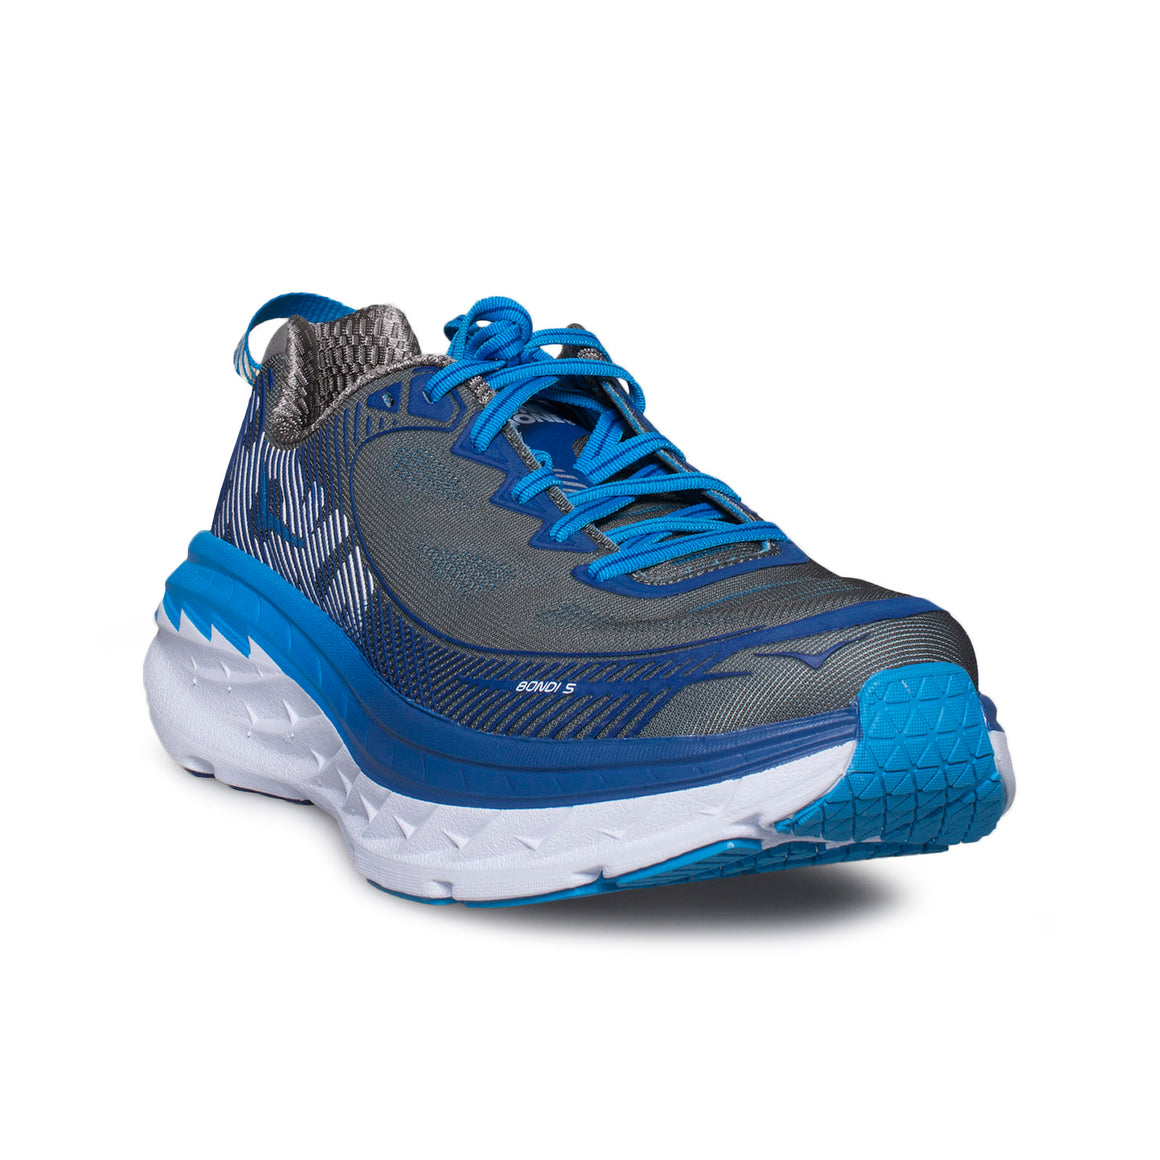 Hoka One One Bondi 5 Charcoal Grey / True Blue Running Shoes  - Men's